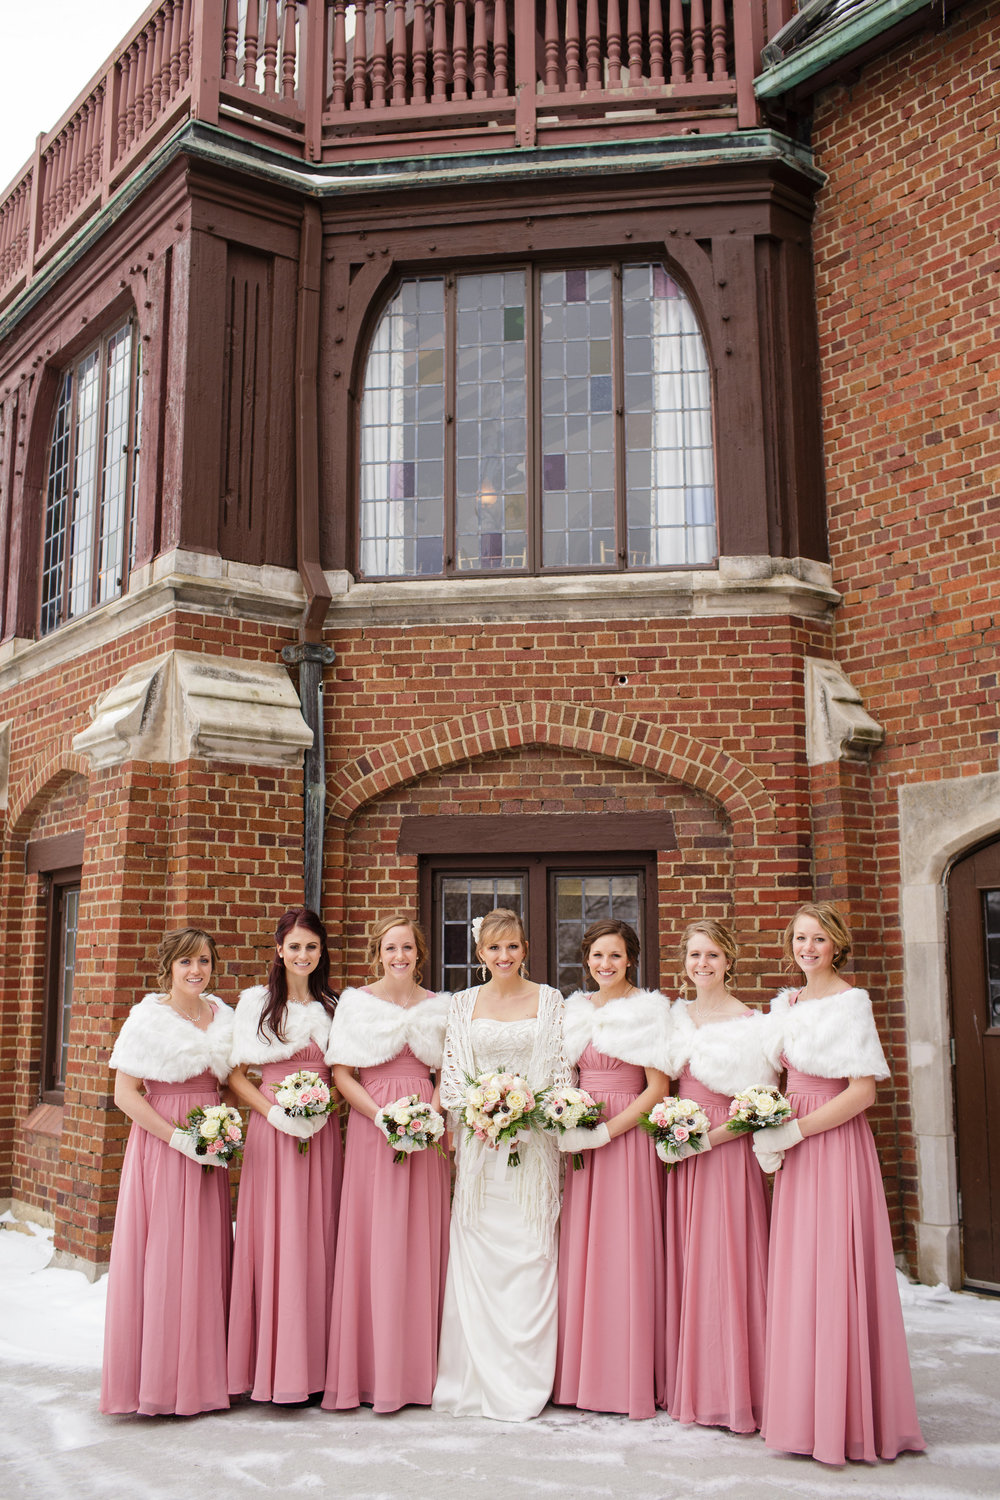 Danrollins-mansion-desmoines-iowa-winter-wedding-pink- fur-bridesmaid-dress